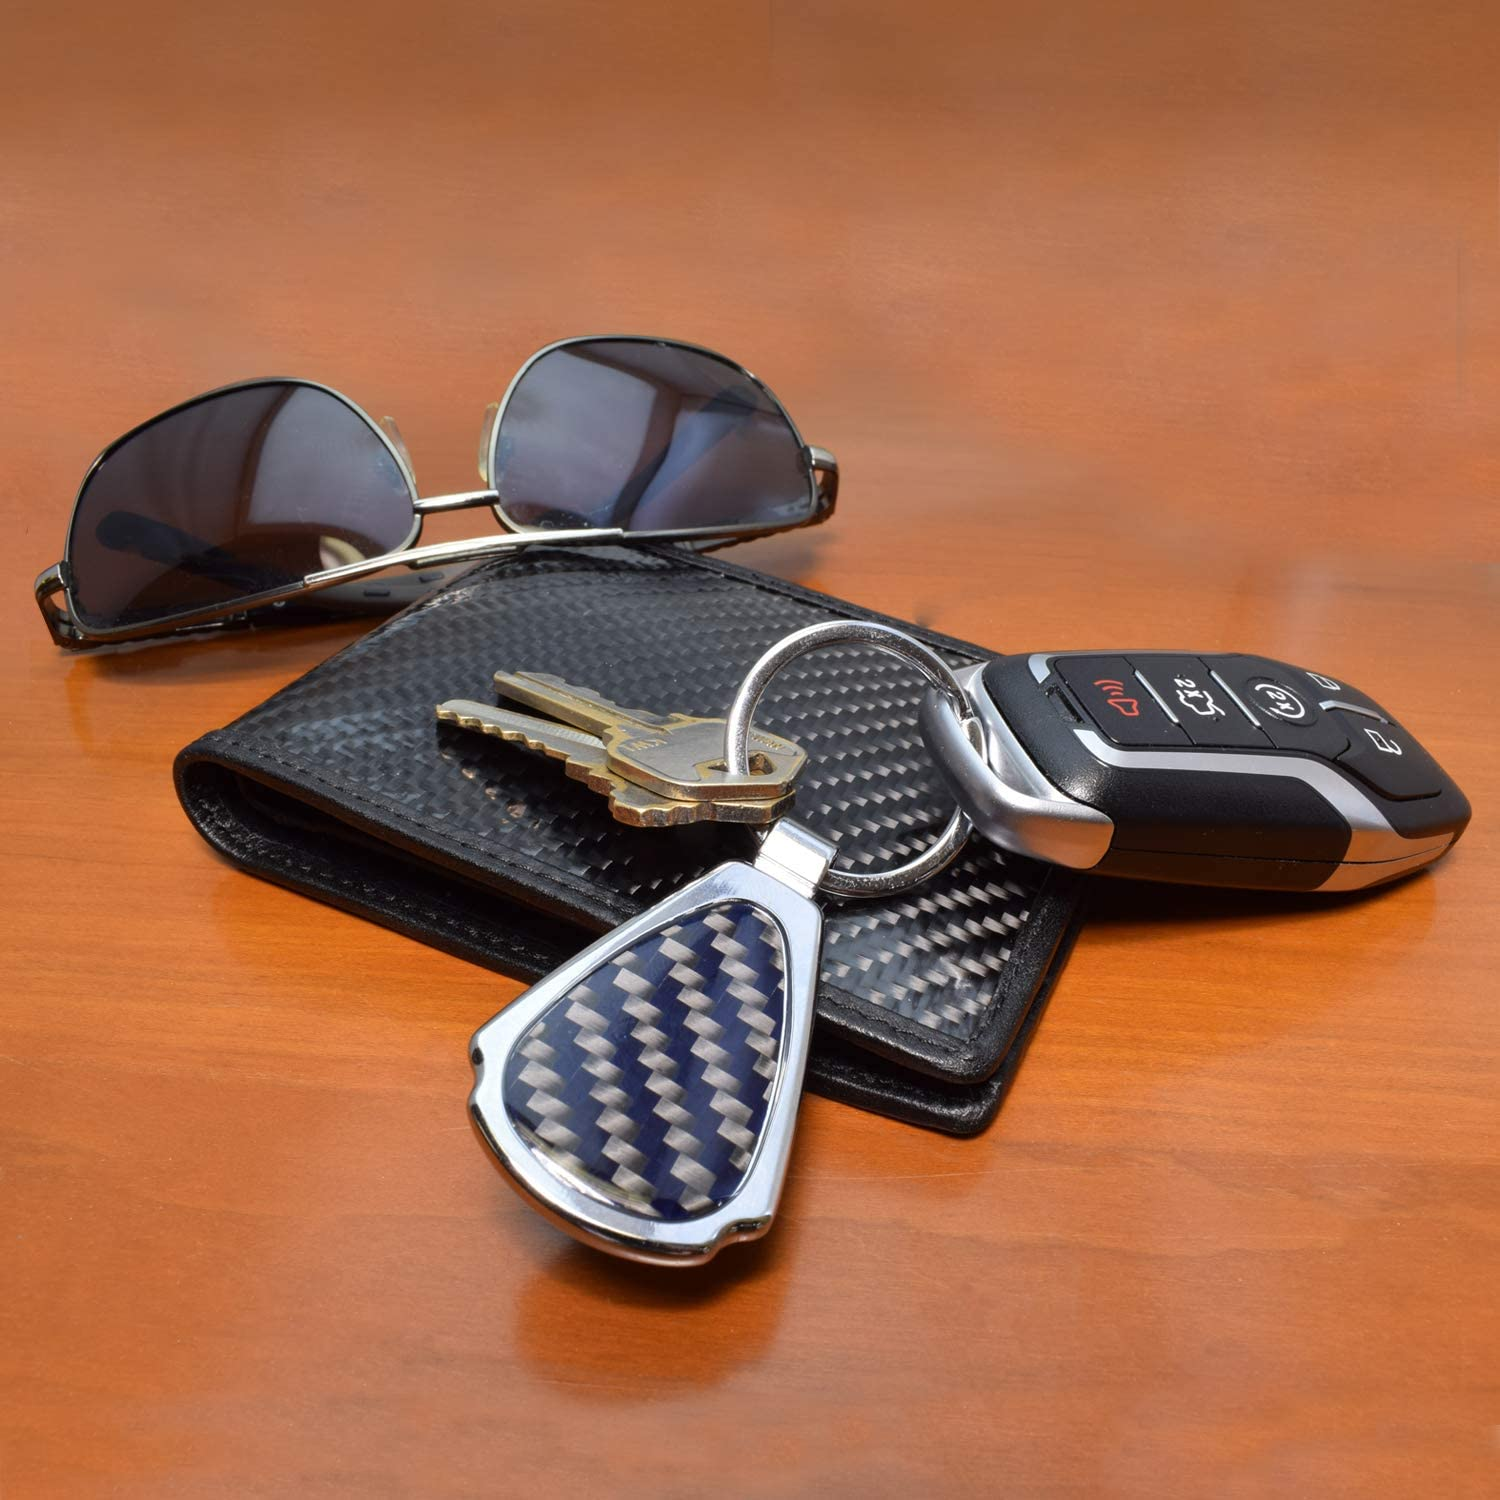 Ford F-150 STX Real Black Carbon Fiber Chrome Metal Teardrop Key Chain iPick Image for